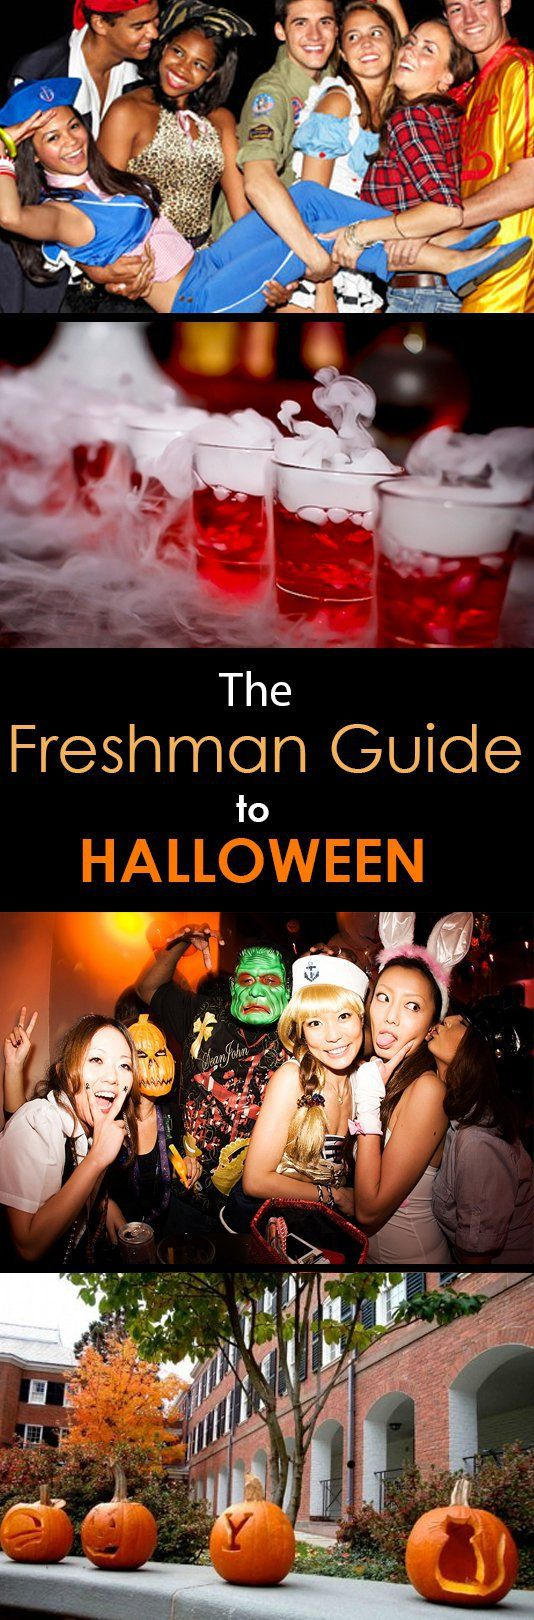 I love halloween! - The Freshman Guide to Halloween in College!